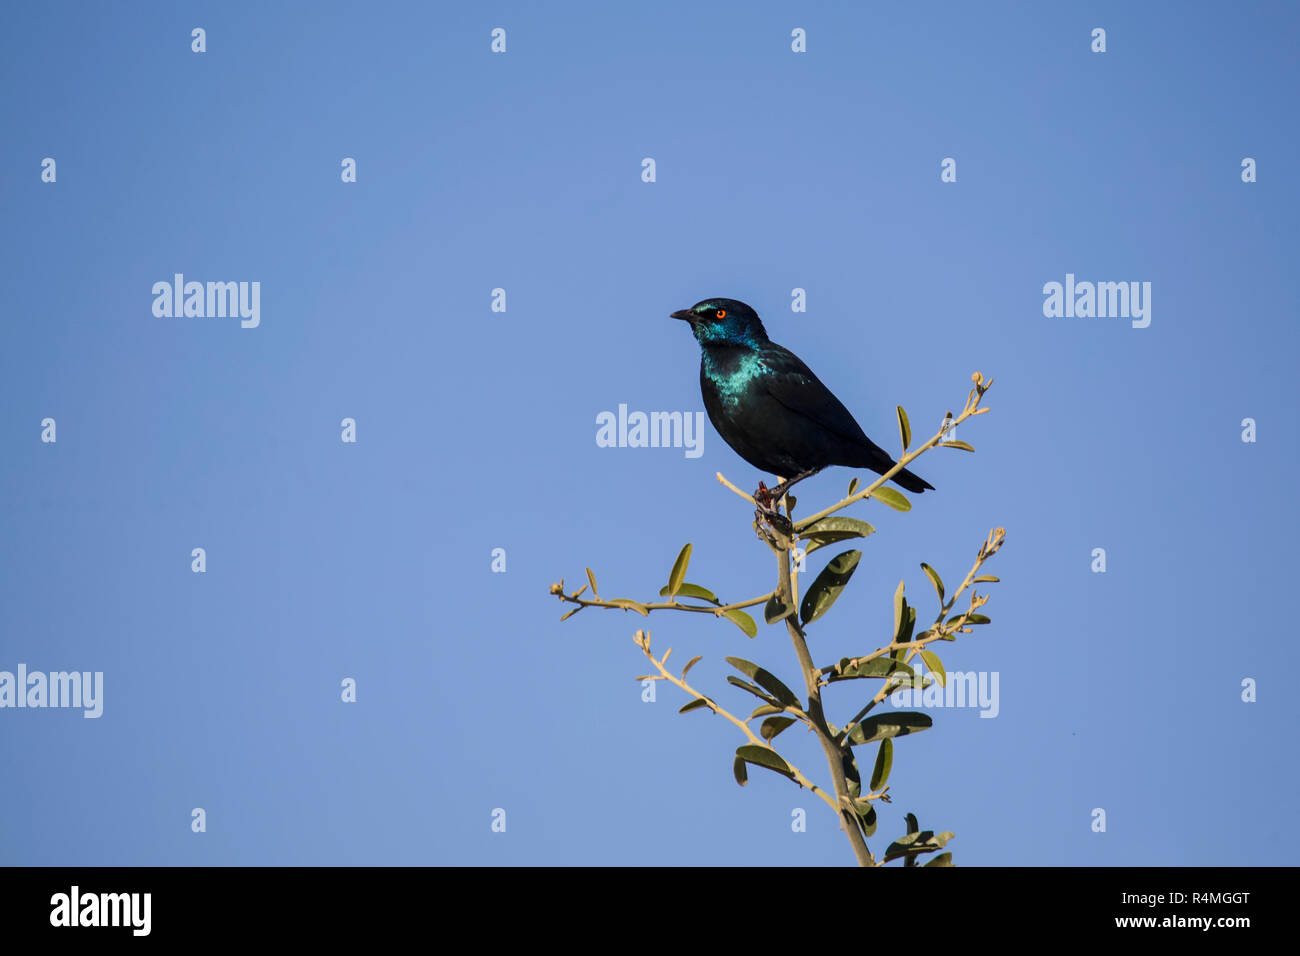 Cape Glossy Starling Lamprotornis nitens in profile at the top of a shrub against a clear blue sky - Stock Image